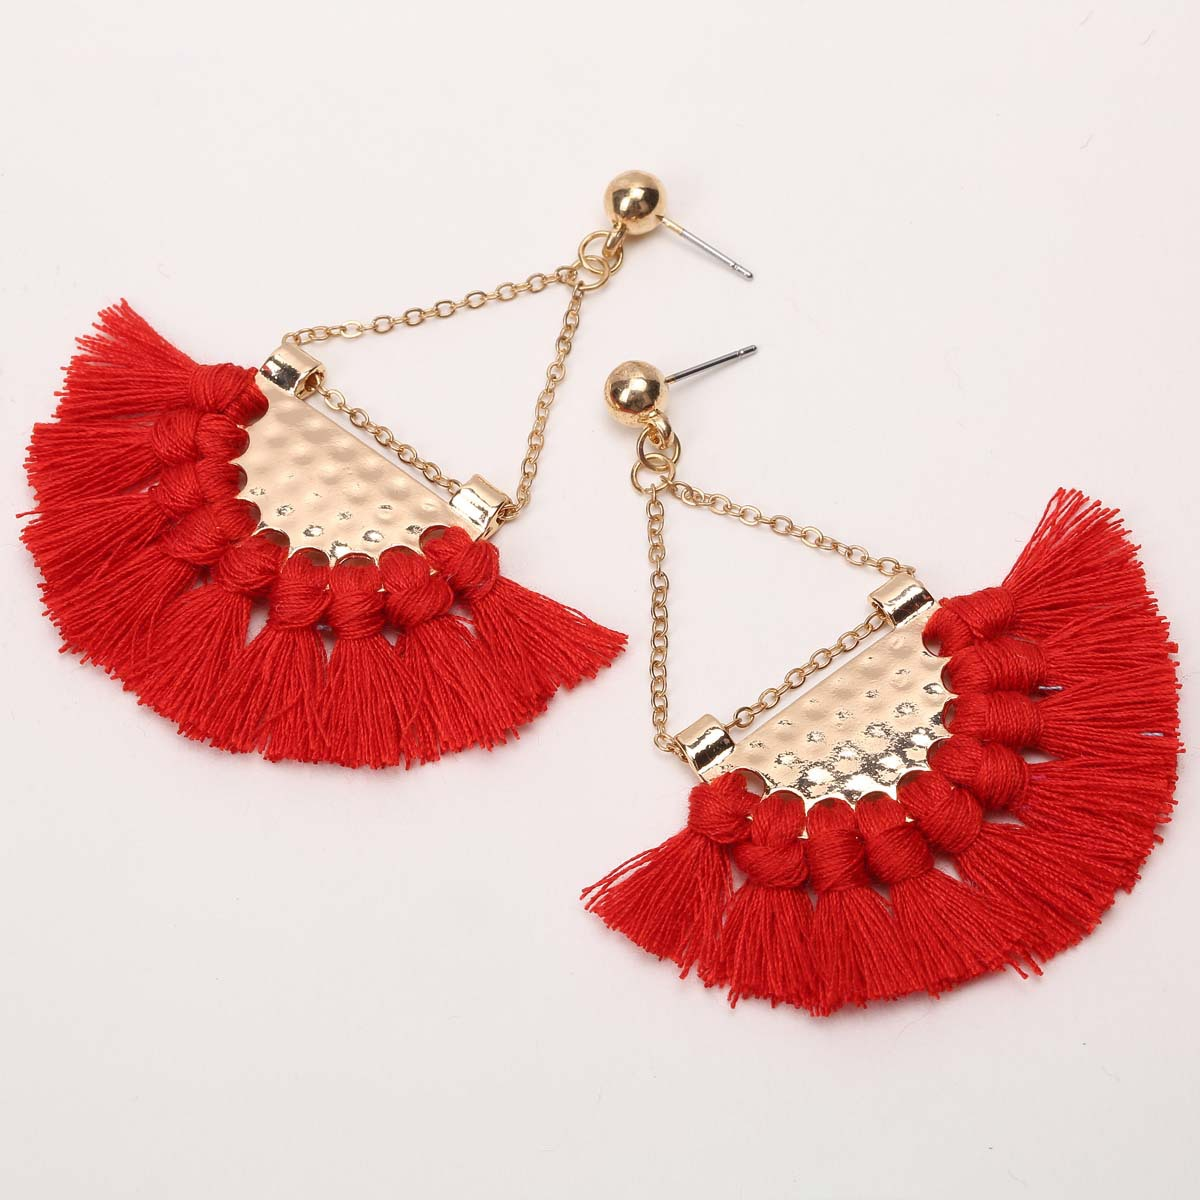 alloy plating earring (B0662 rose red)NHXR1456-B0662 rose red